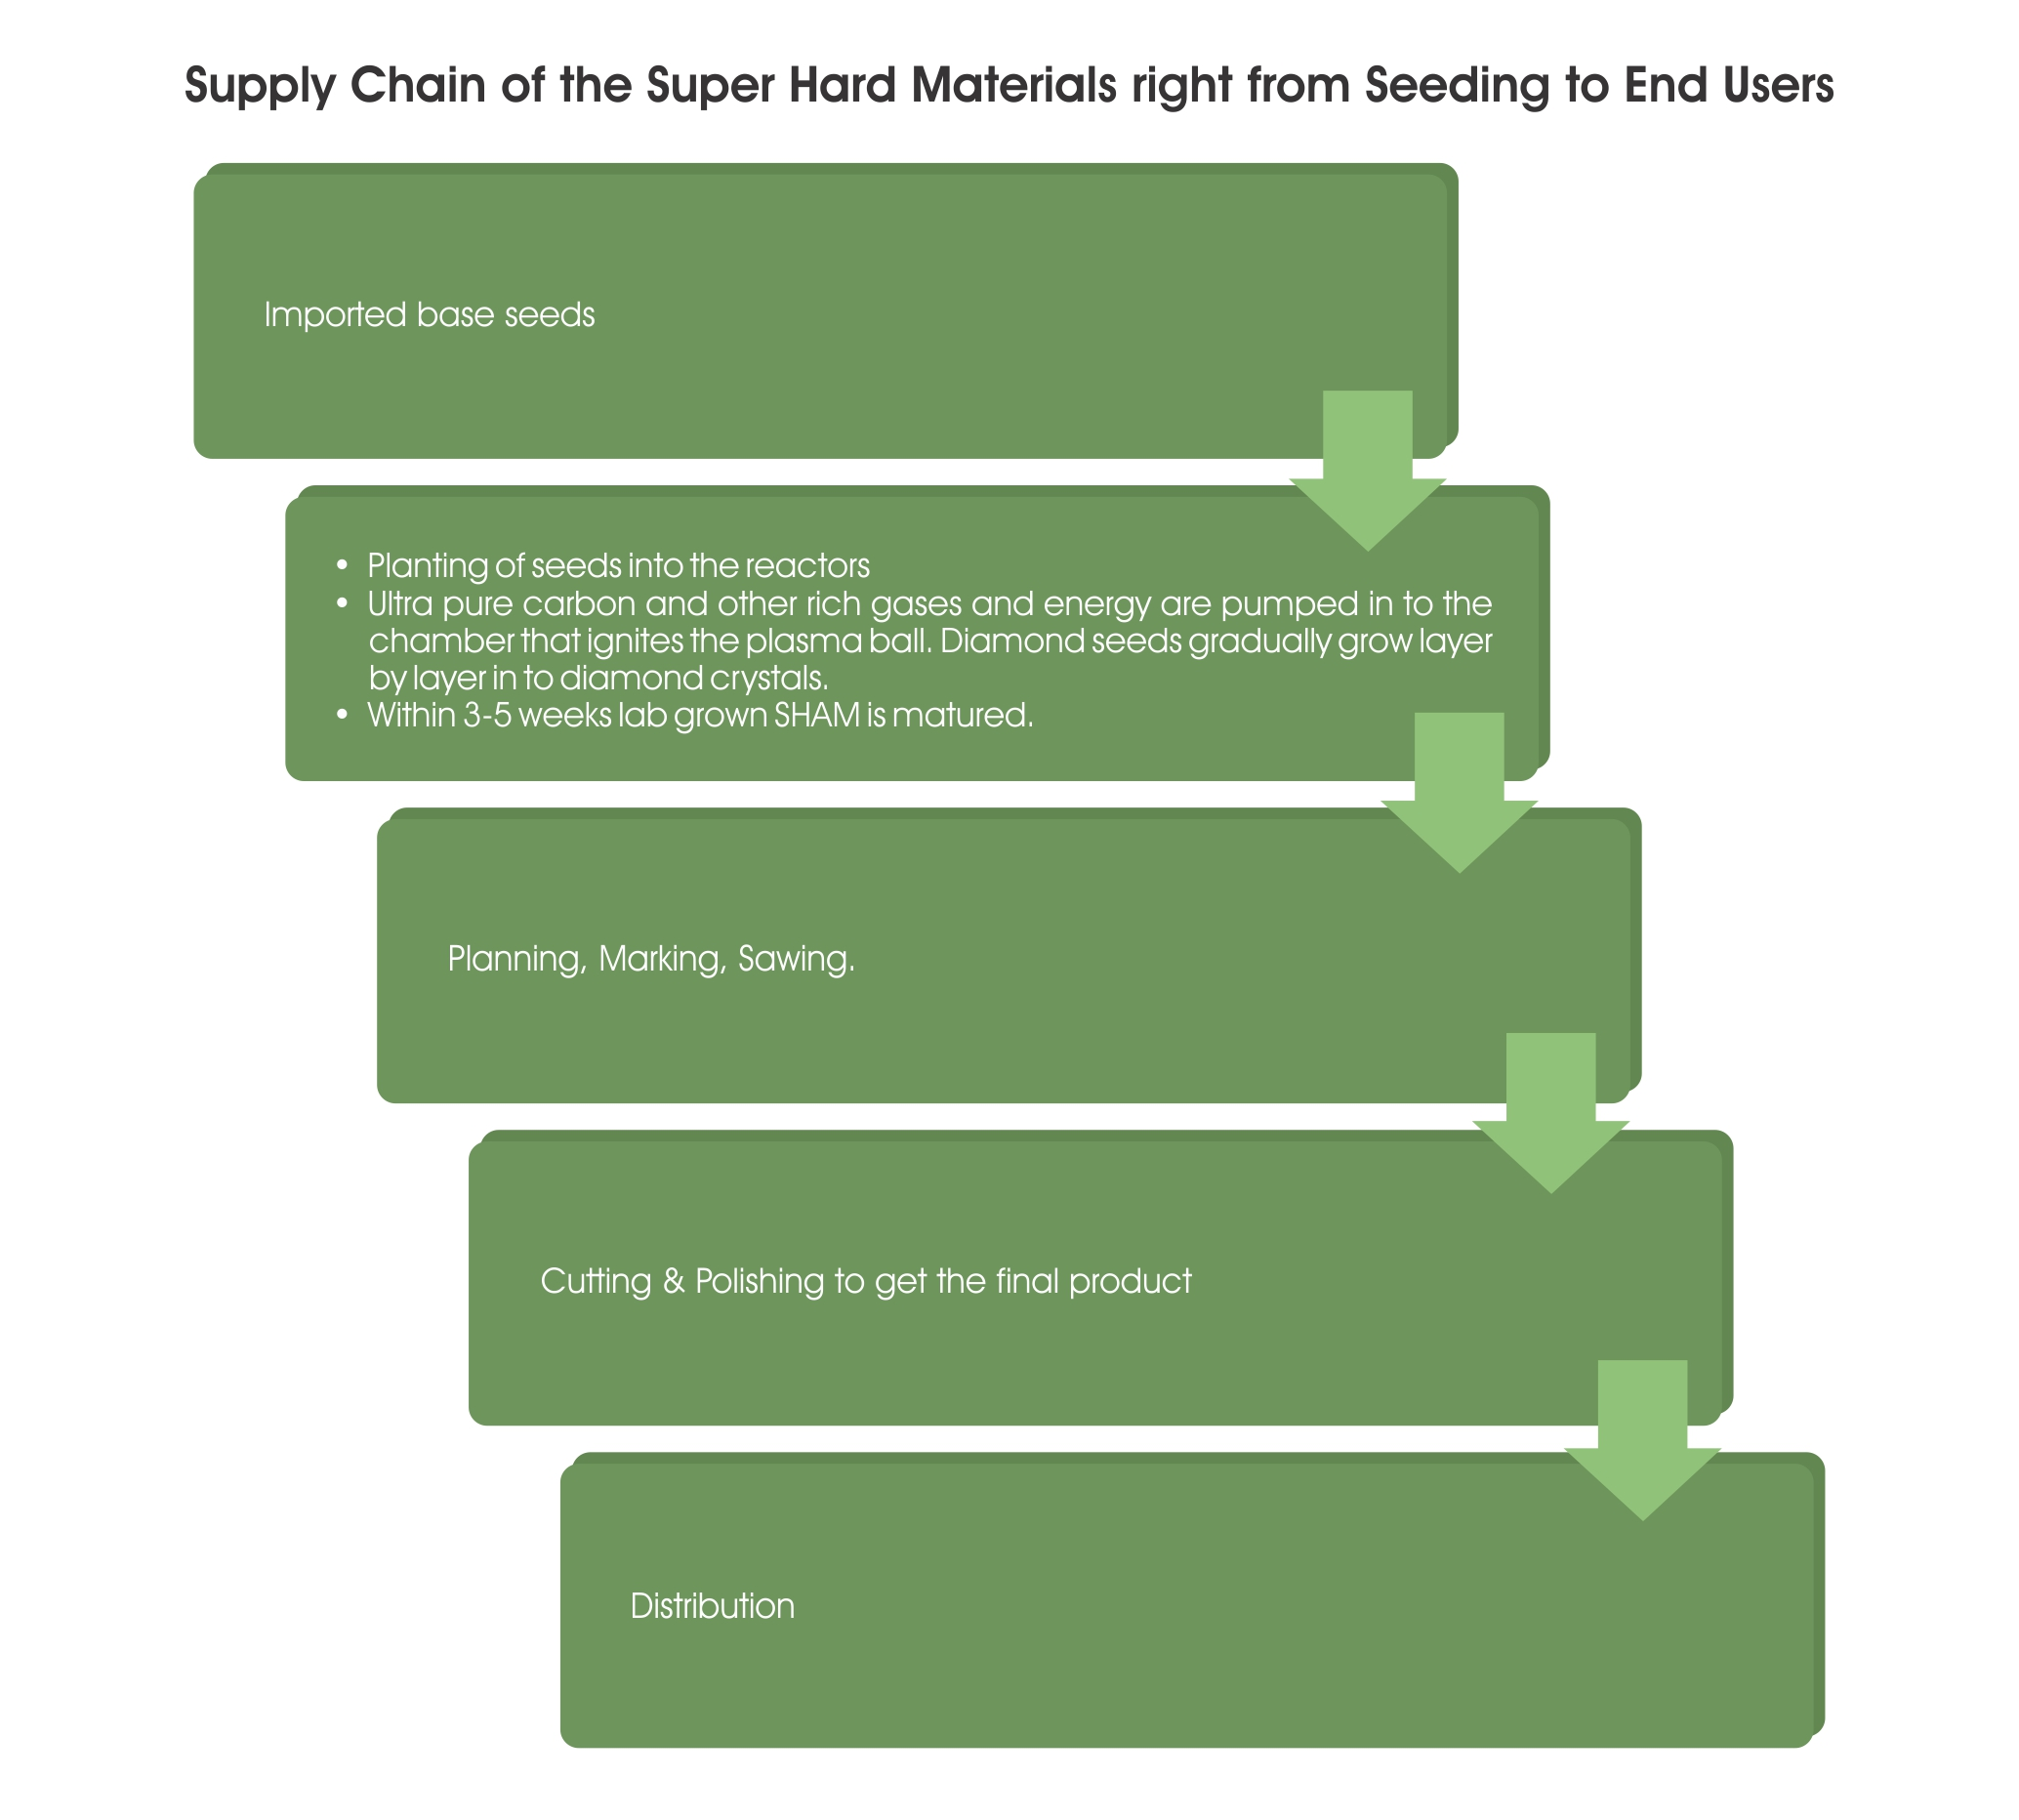 3- LDV - Supply Chain of the Super Hard Materials